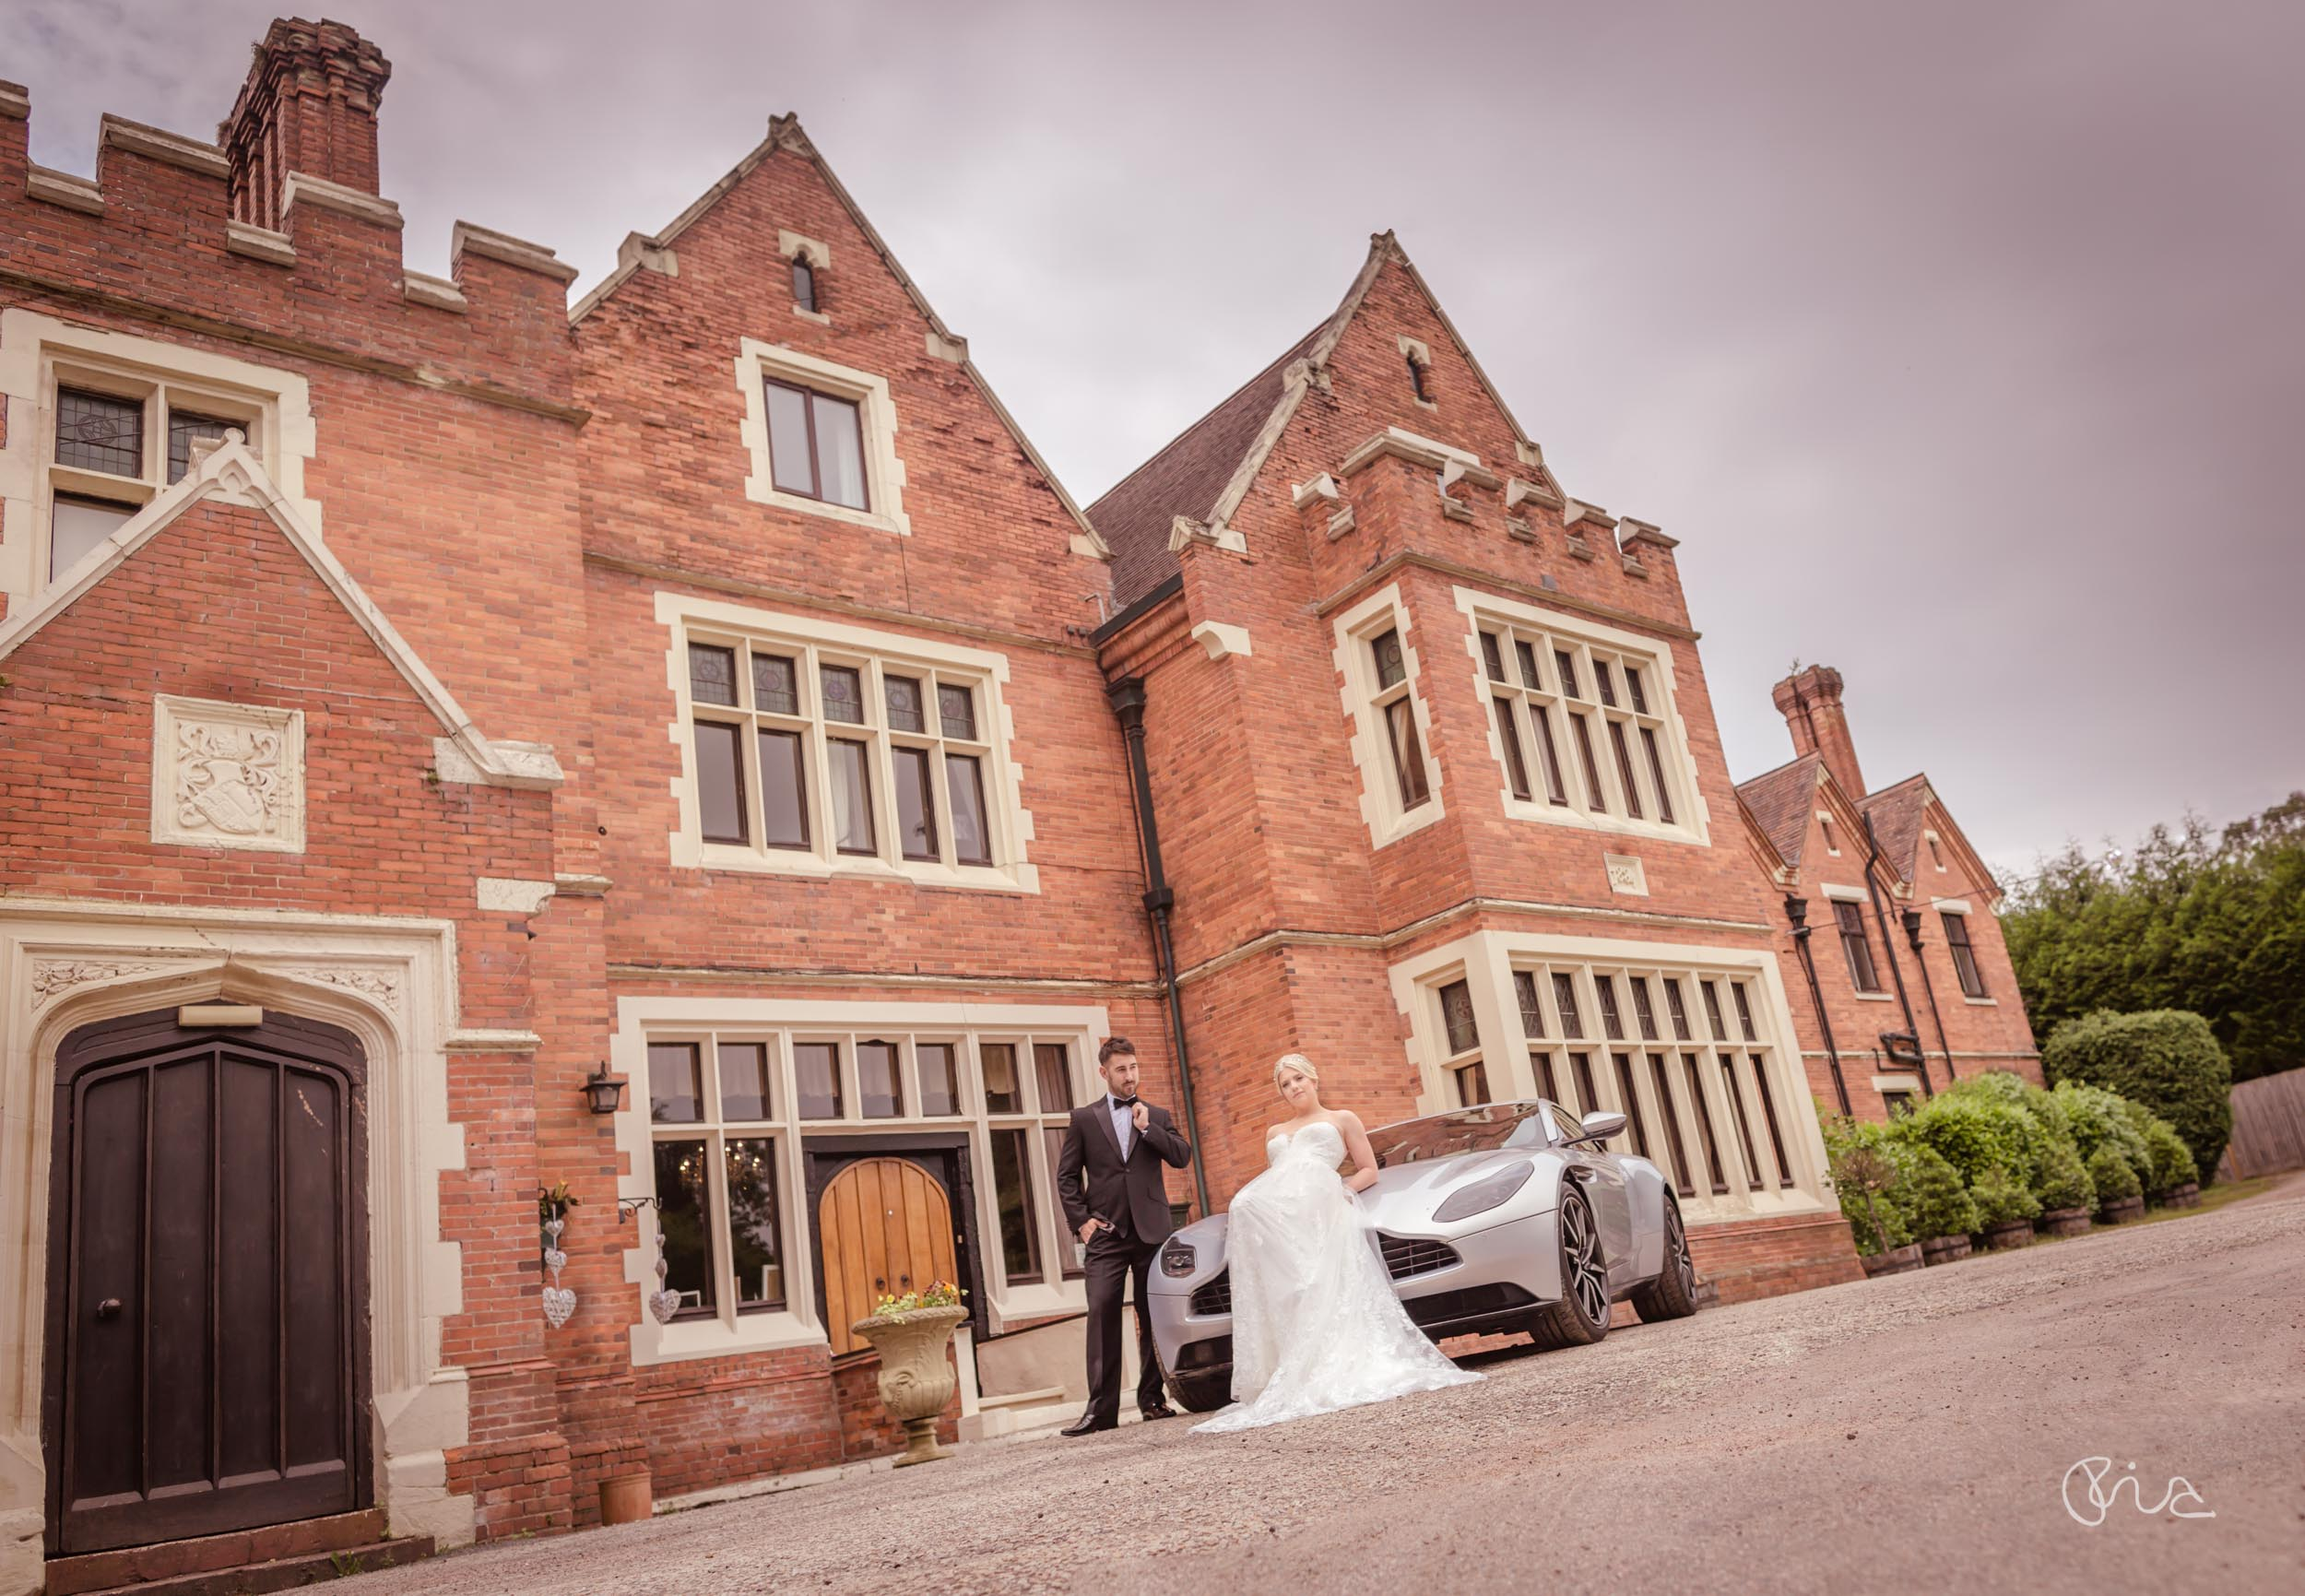 Bride and Groom at Highley Manor weddings